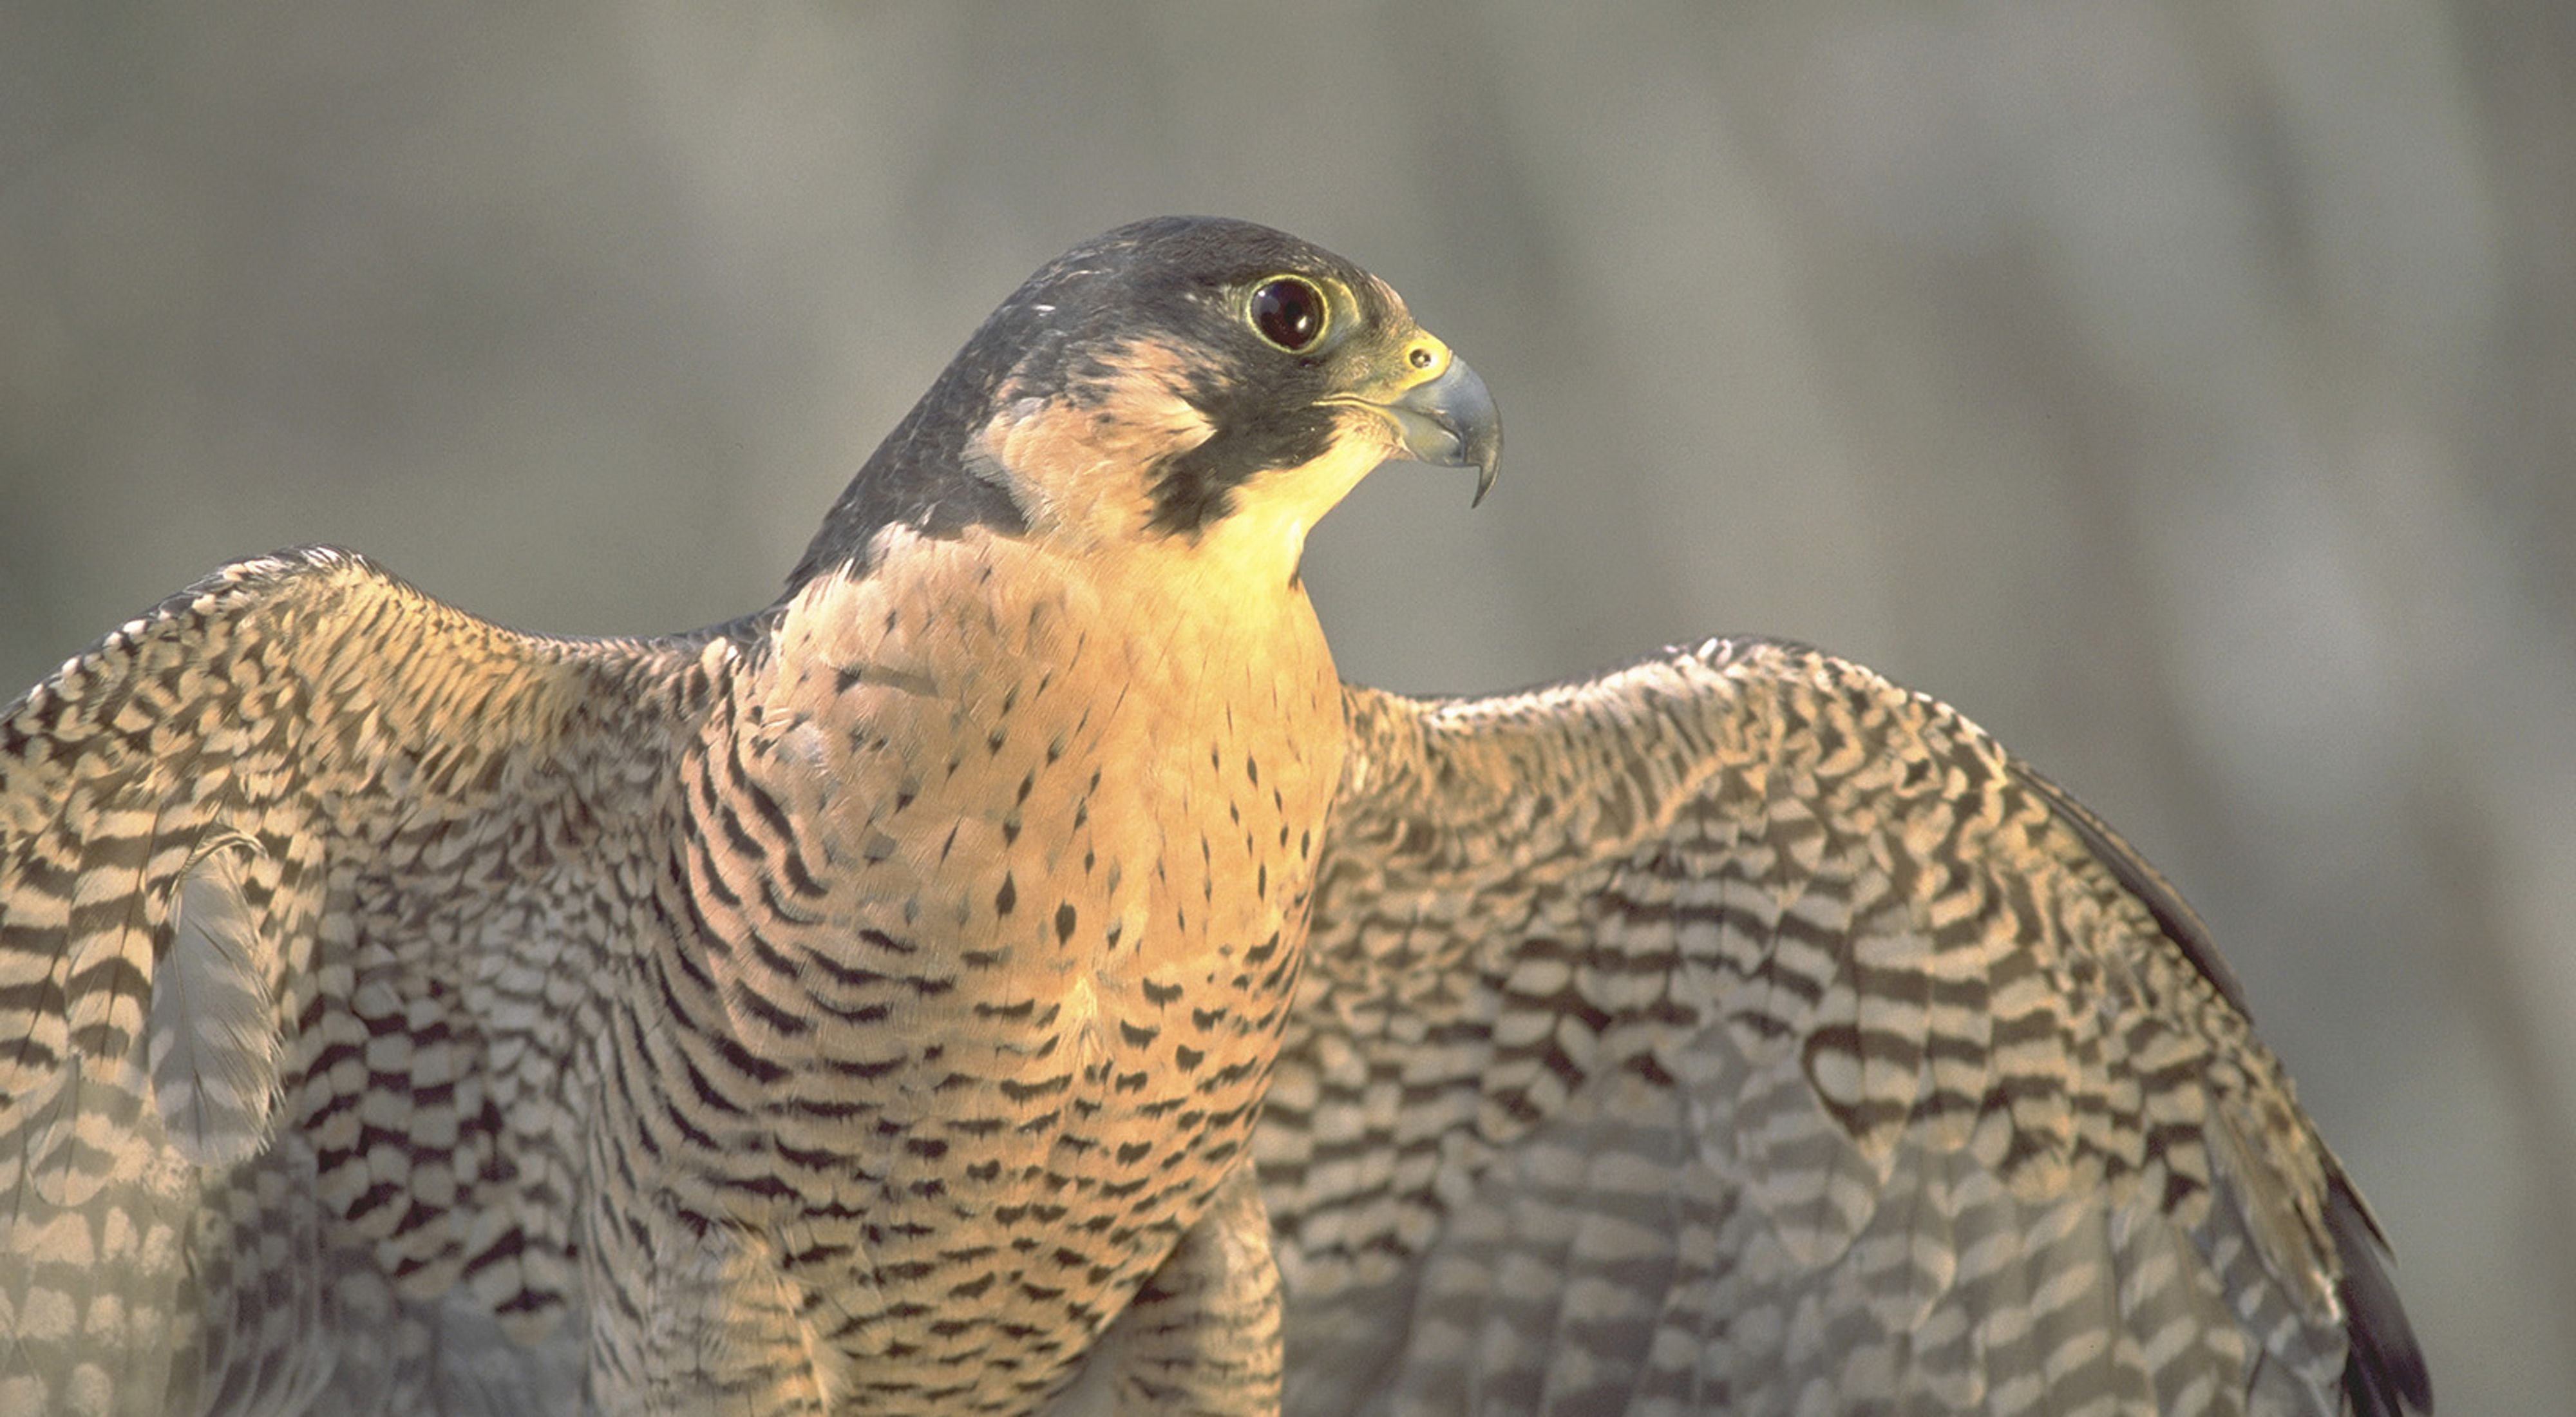 Close up view of a black and white patterned falcon that is looking to the right-hand side of the frame.